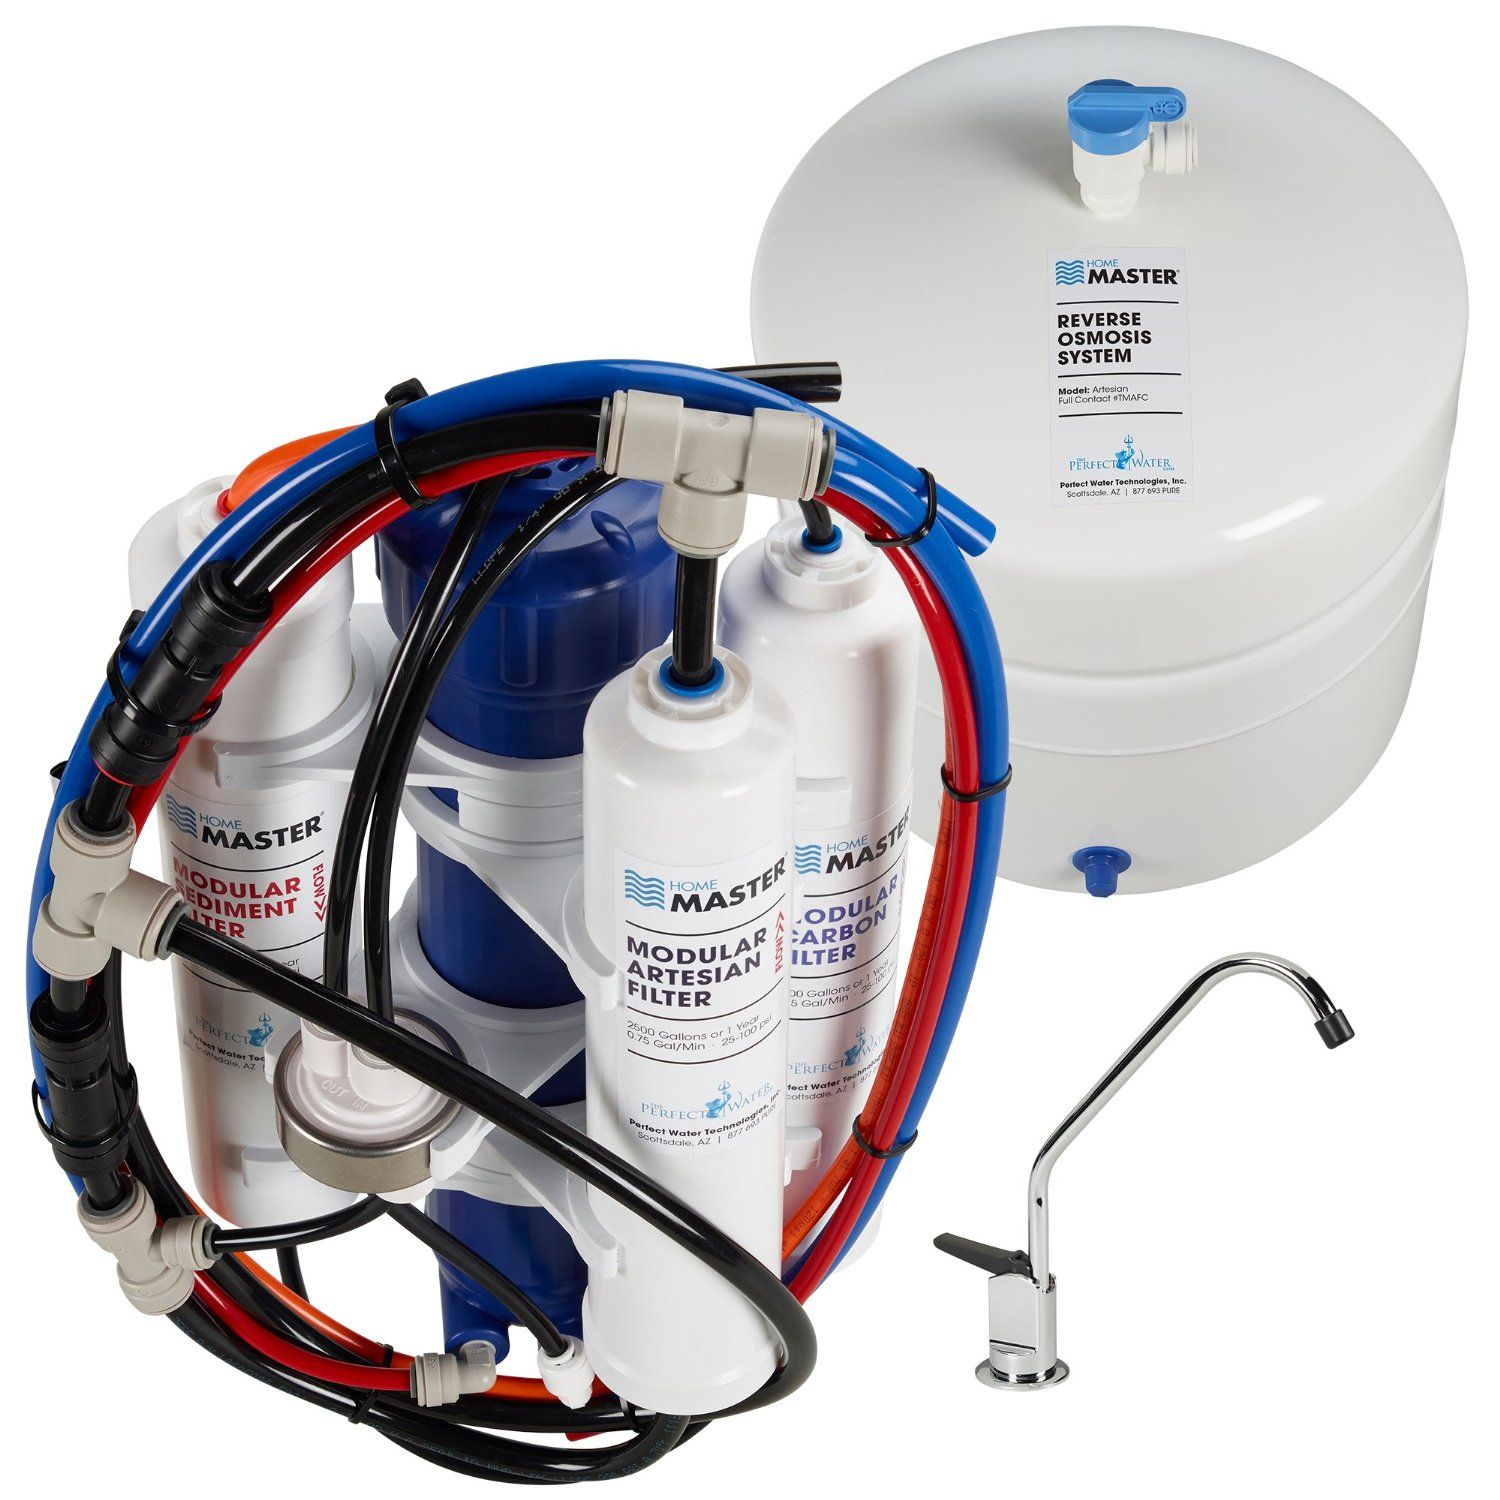 Home Master Artesian Reverse Osmosis System review